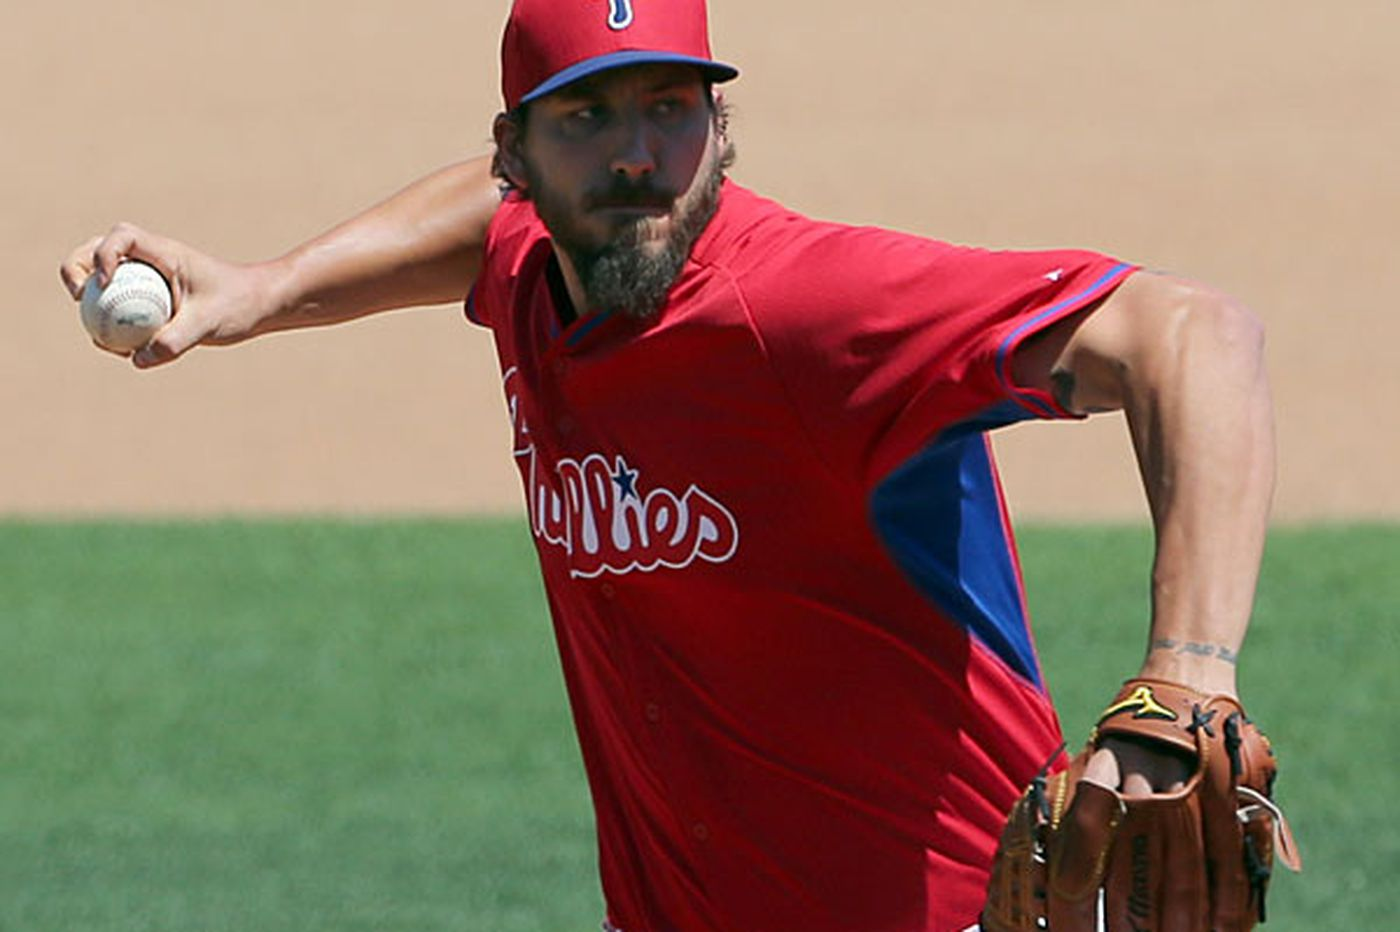 Phillies' bullpen answers not in minors